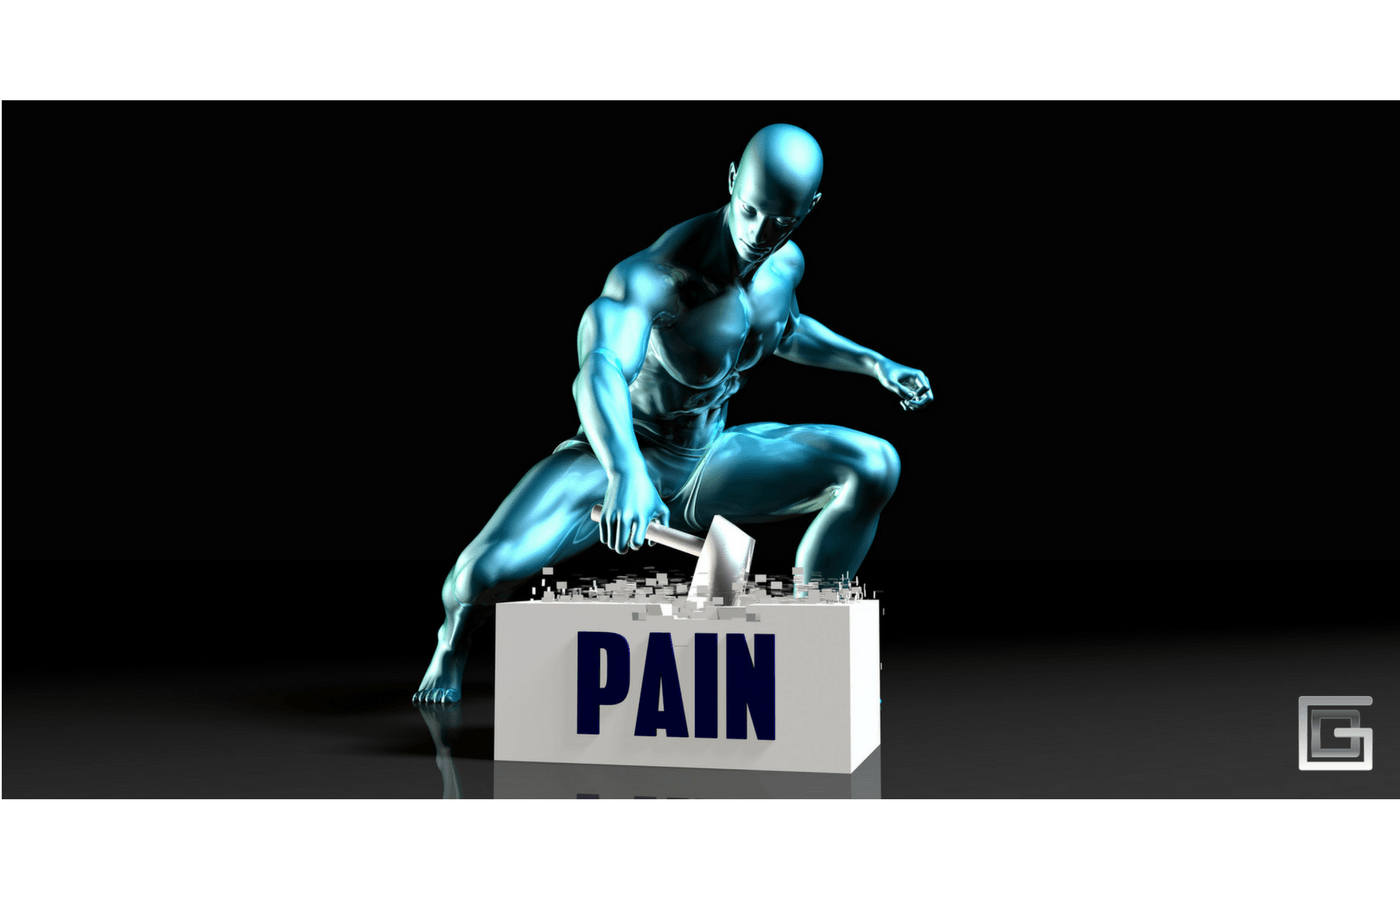 Focus on the ways your product eliminates pain